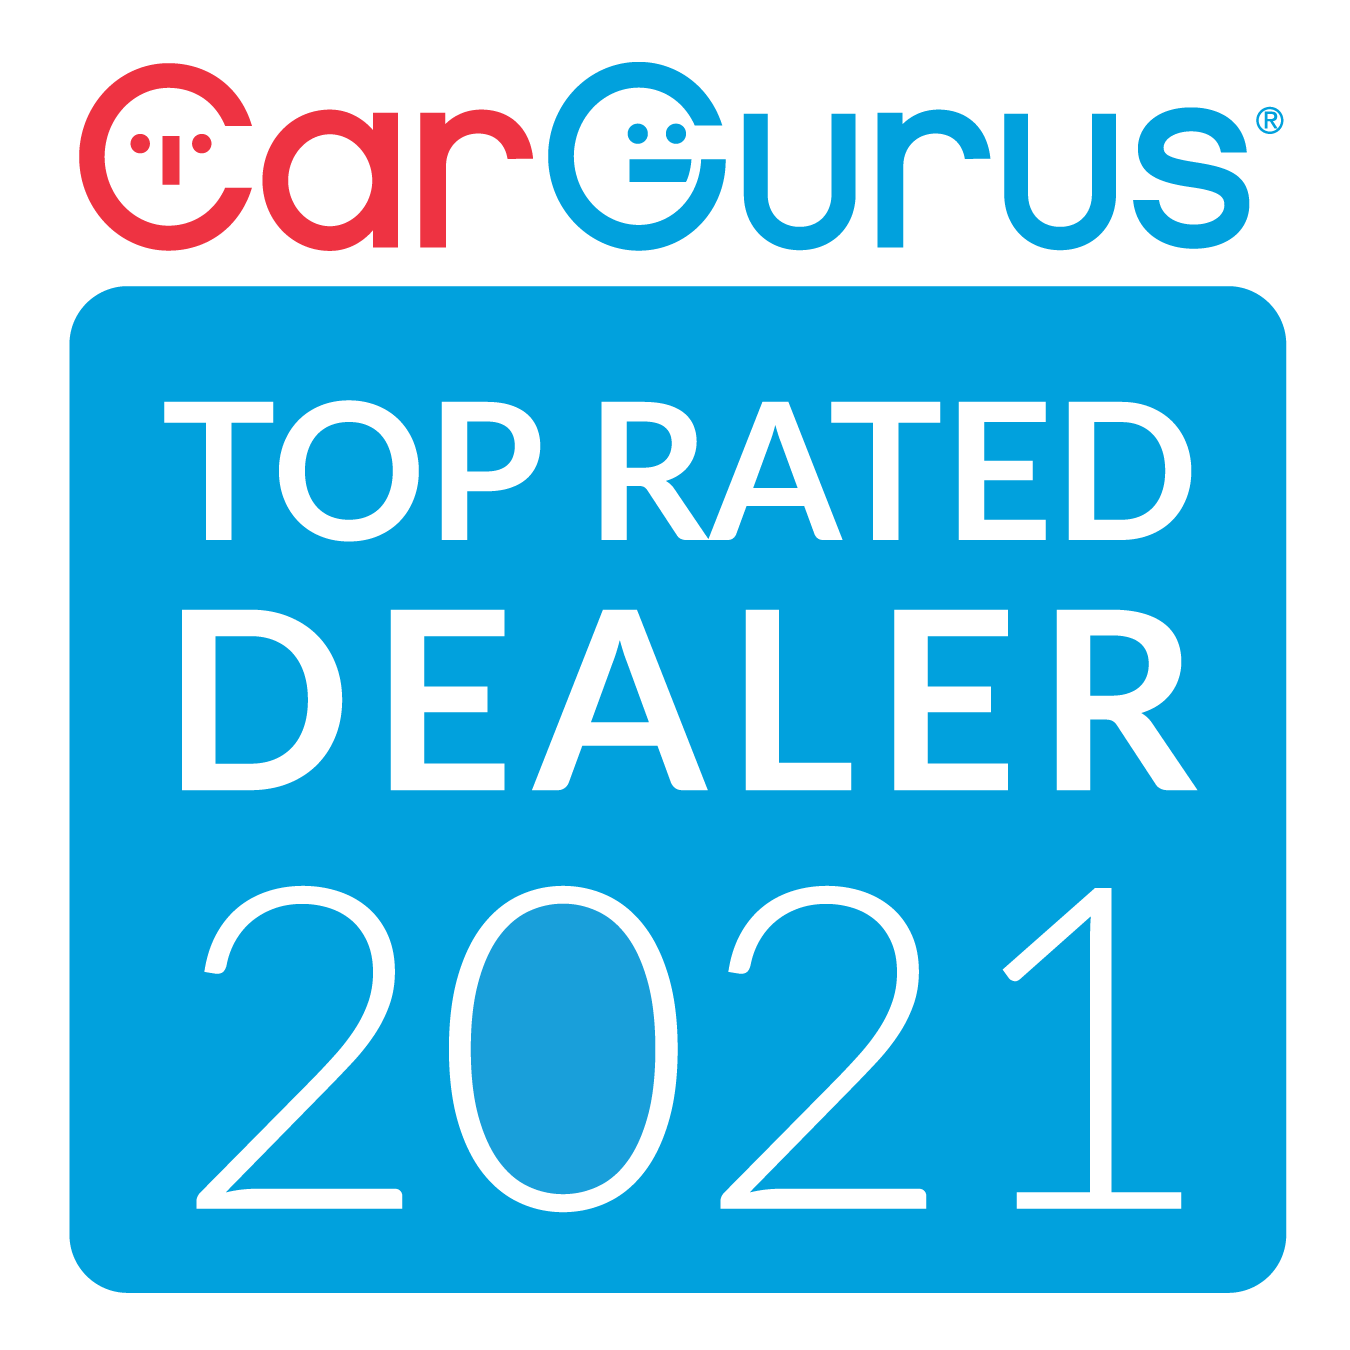 2021 Car Gurus Top Rated Dealer